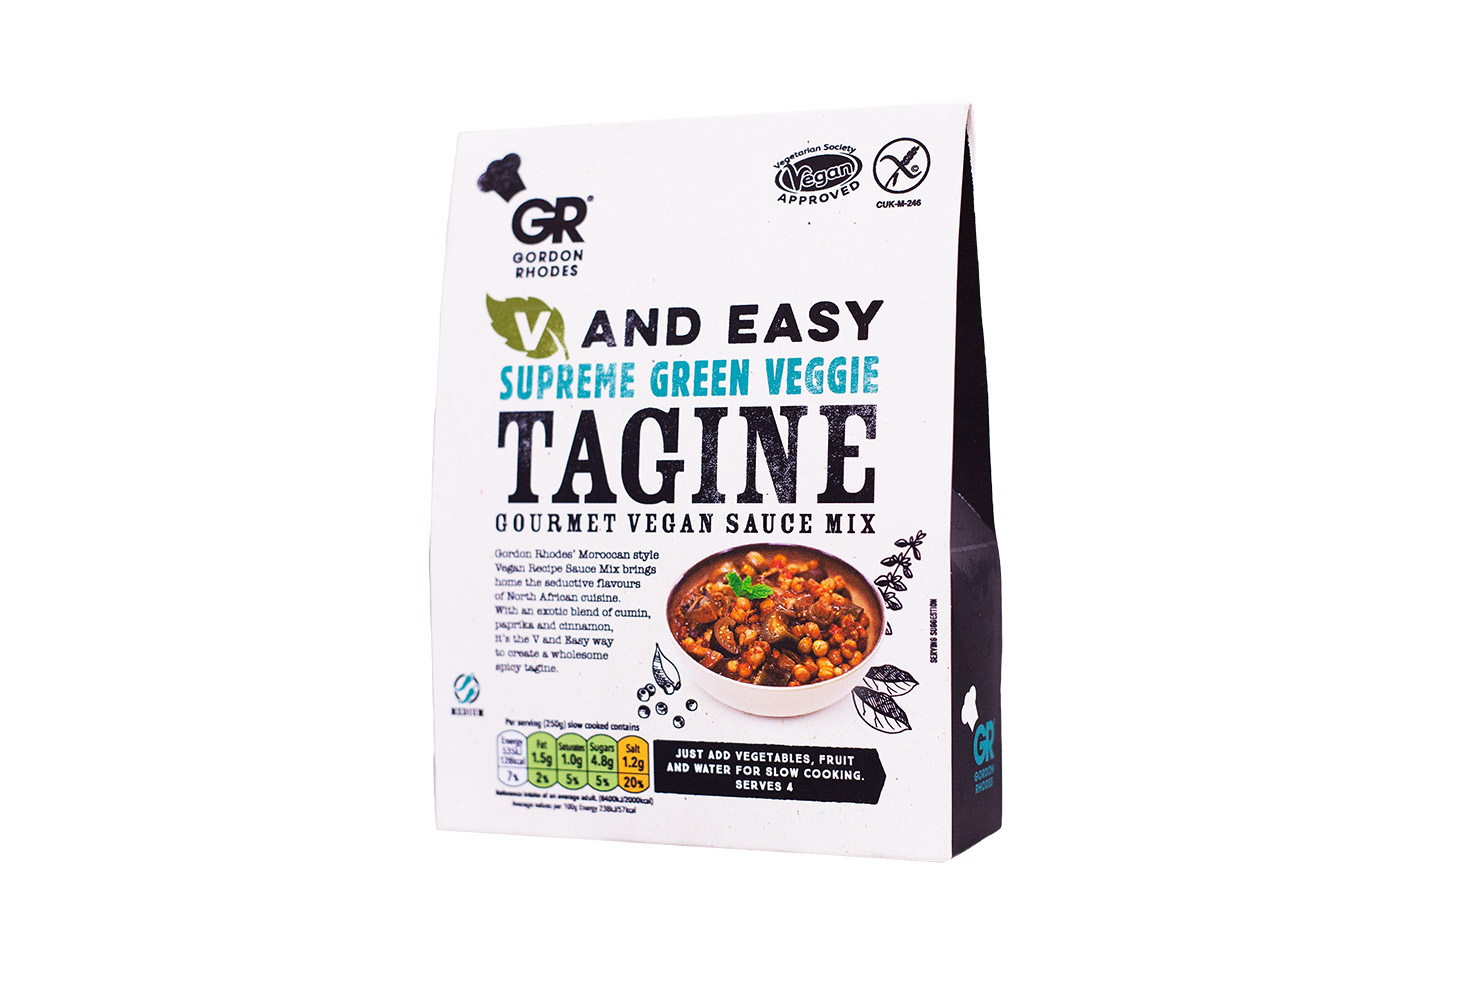 GR V & EASY TAGINE SAUCE MIX SRP